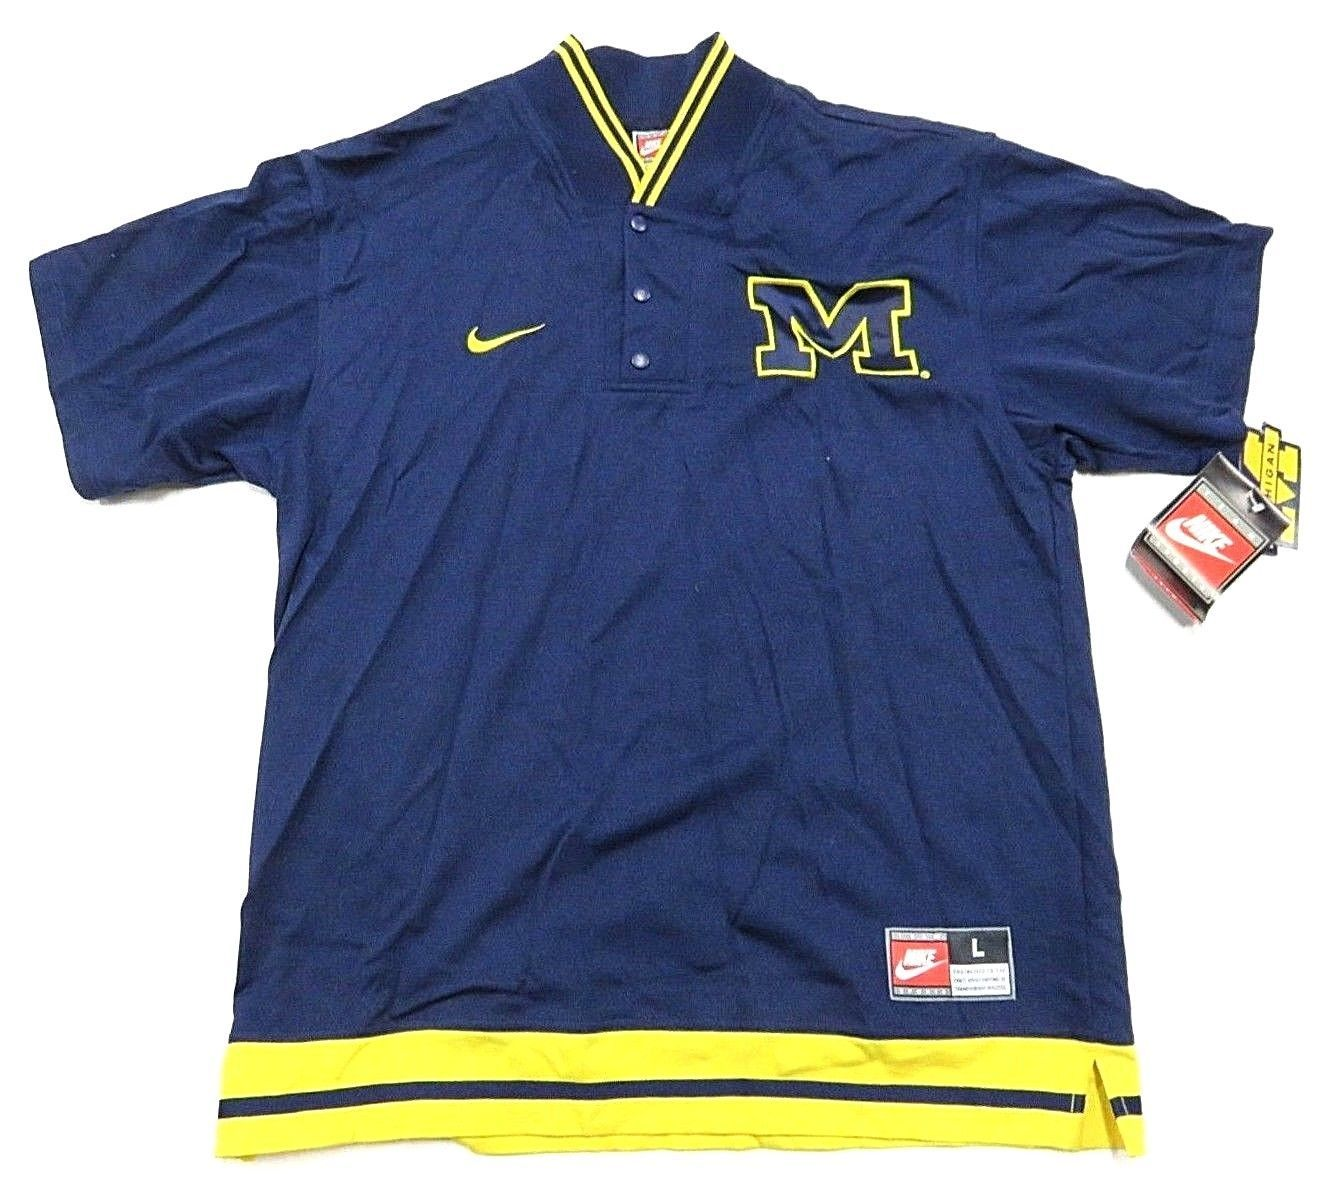 c6485e89428959 NWT Michigan Wolverines Men s Blue 1 4 and 50 similar items. S l1600